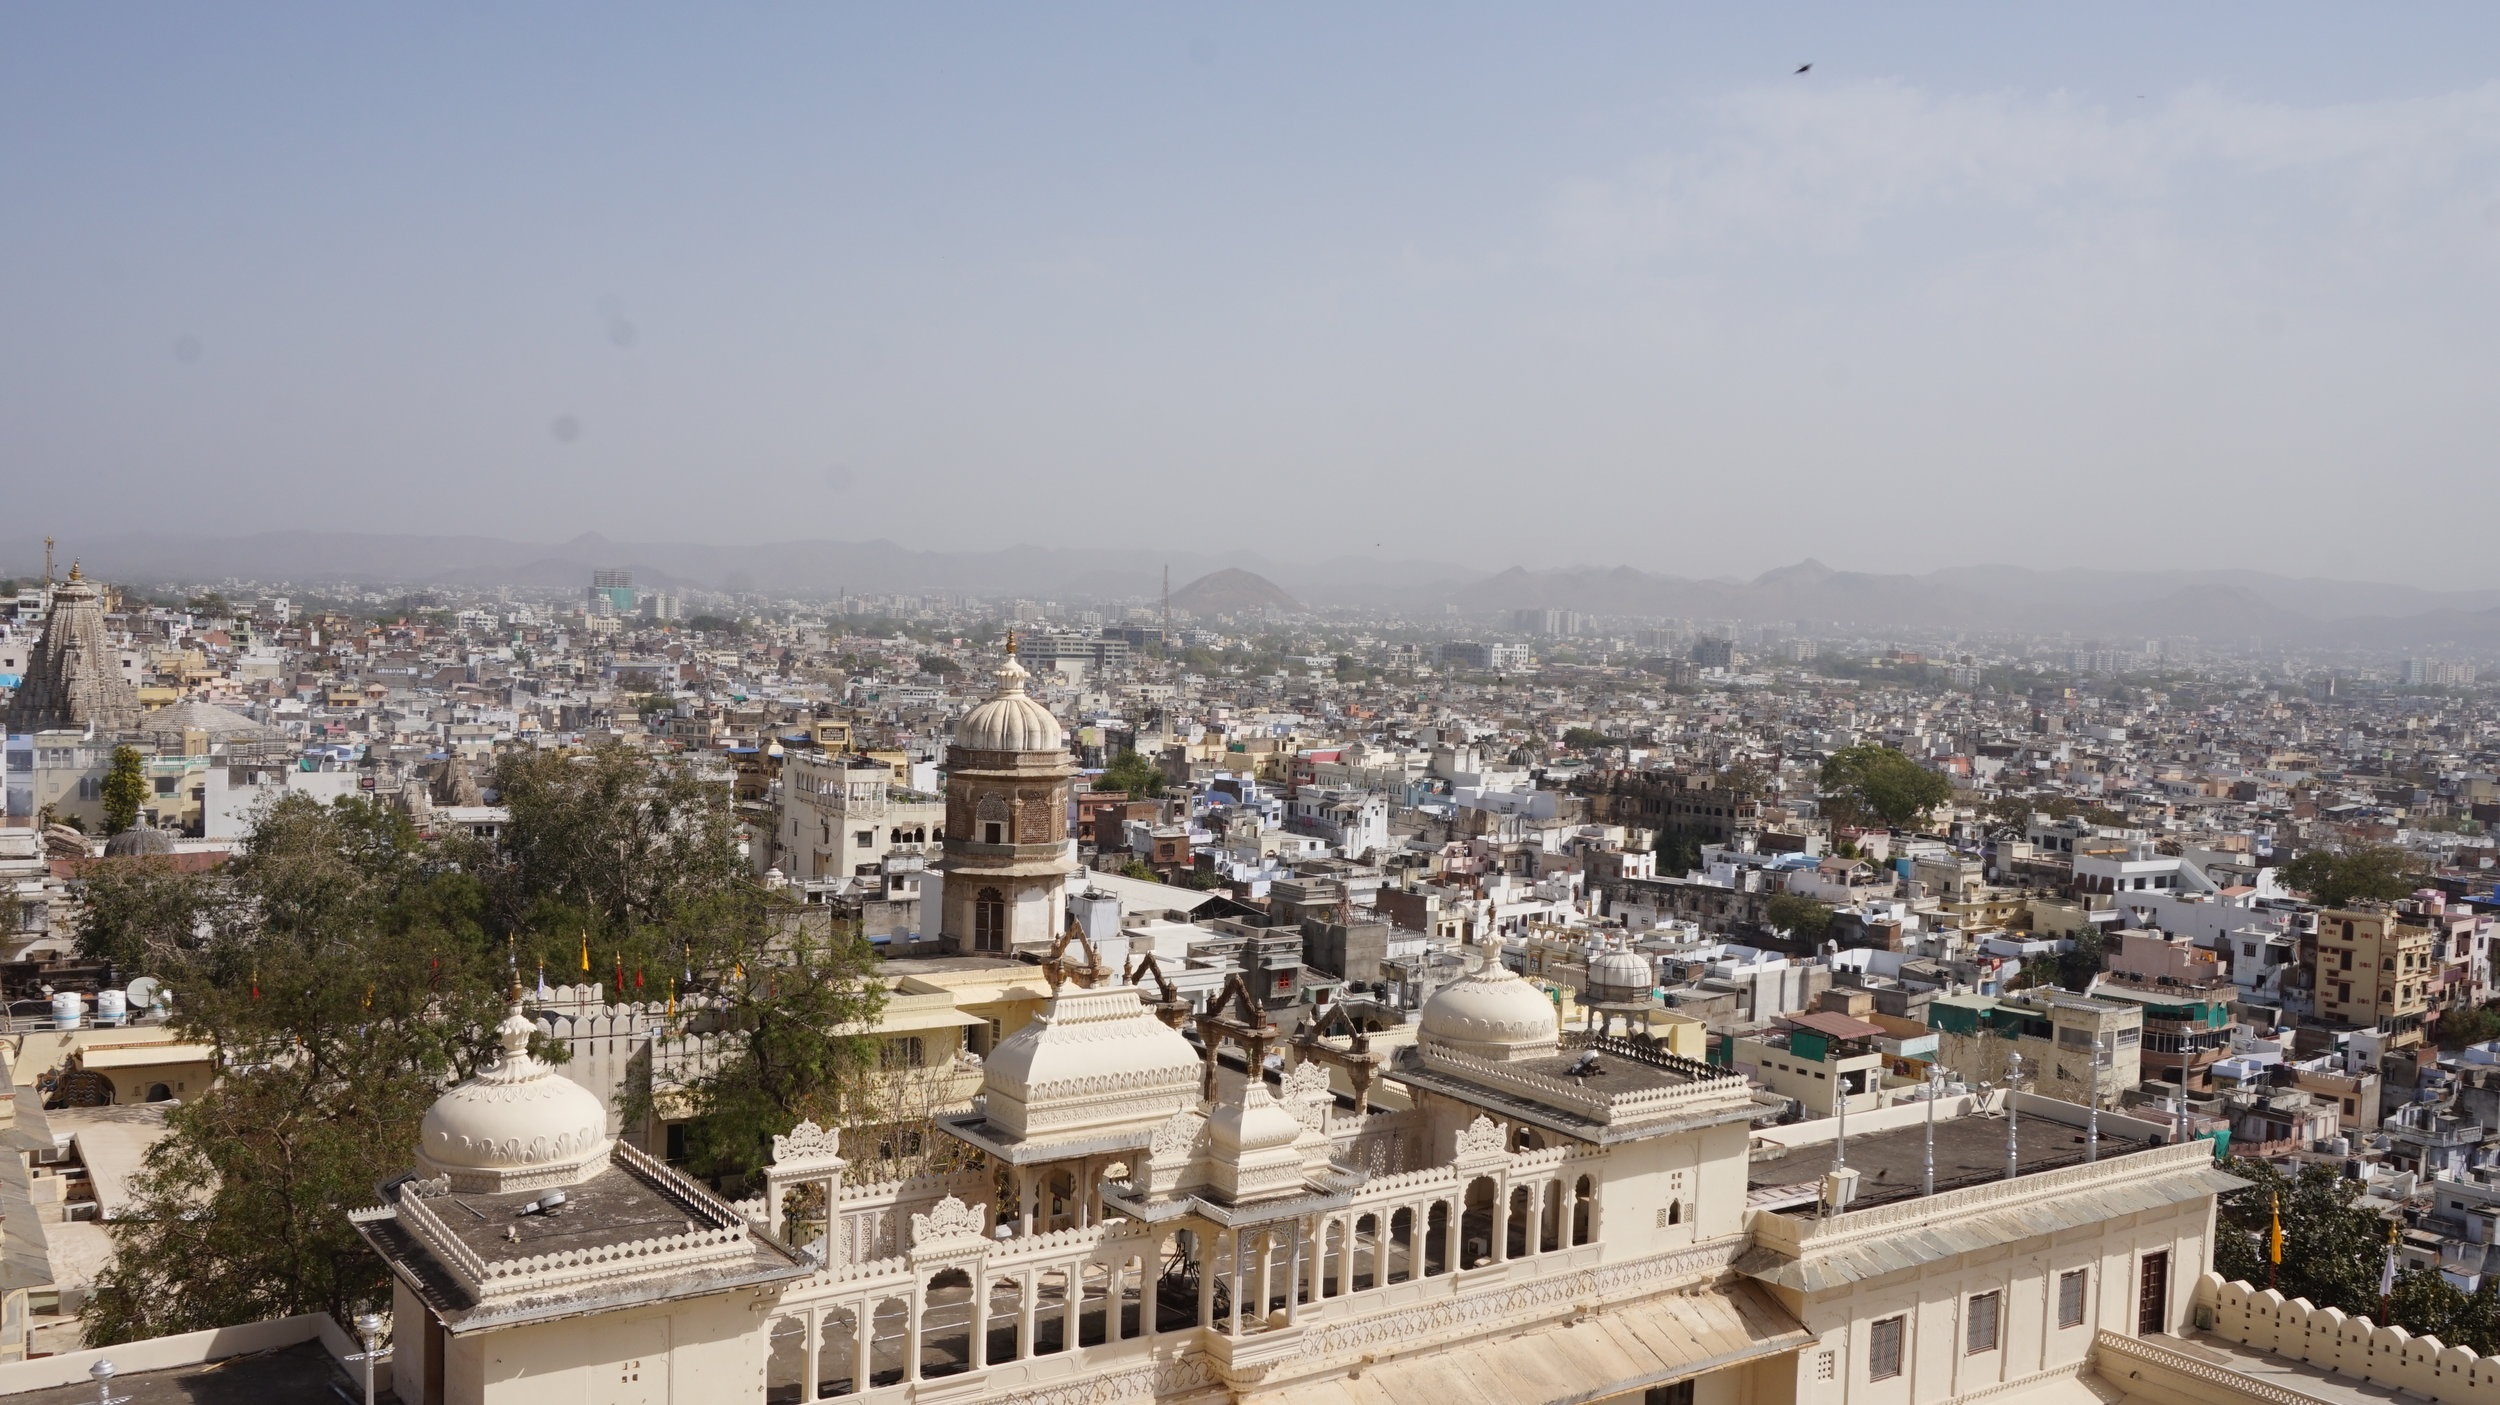 View over the beautiful city of Udaipur. See the city from one of the rooftop terraces is one of the places to visit in Udaipur.